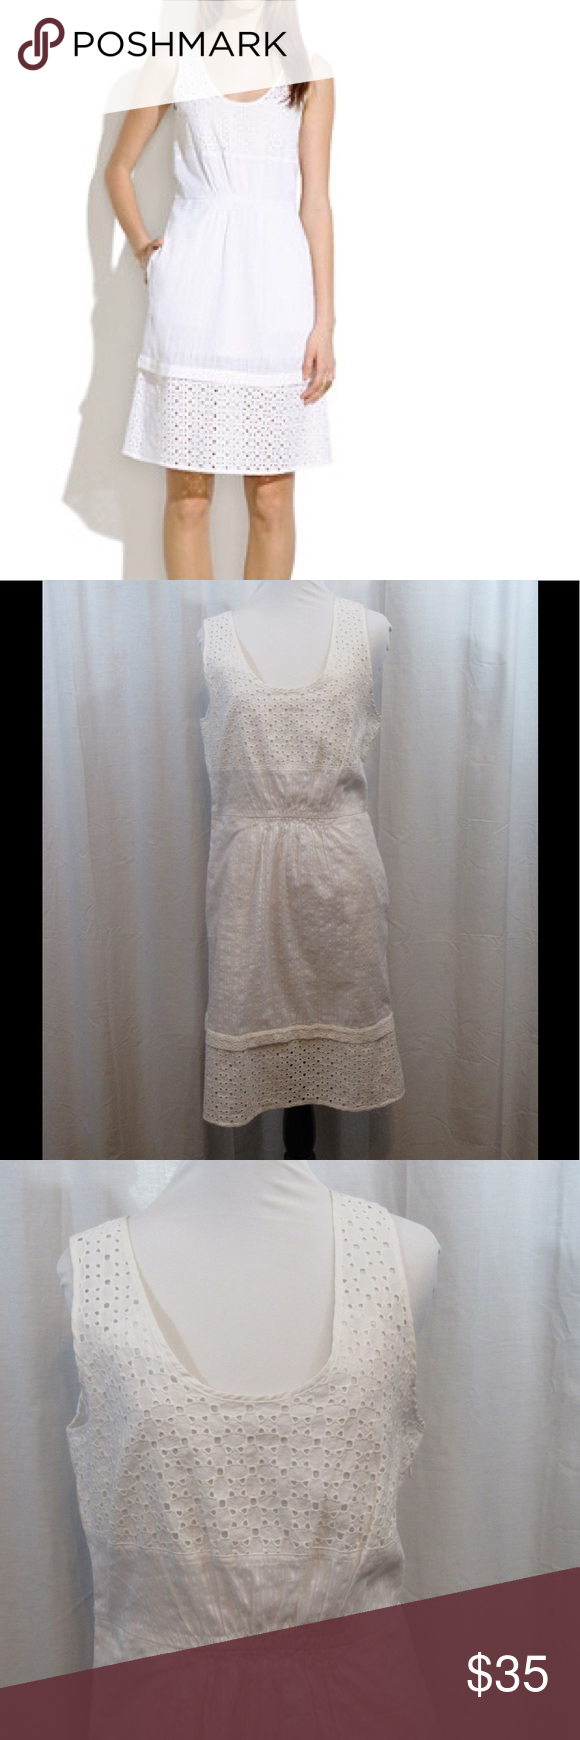 "Madewell White Eyelet Lovesong Dress 10 Size: 10 Material: 100% Cotton Care Instructions: Machine Wash Bust: 40"" Waist: 32"" Length: 39""  All clothes have been inspected and are in excellent used condition unless otherwise noted. P60 Madewell Dresses Midi"